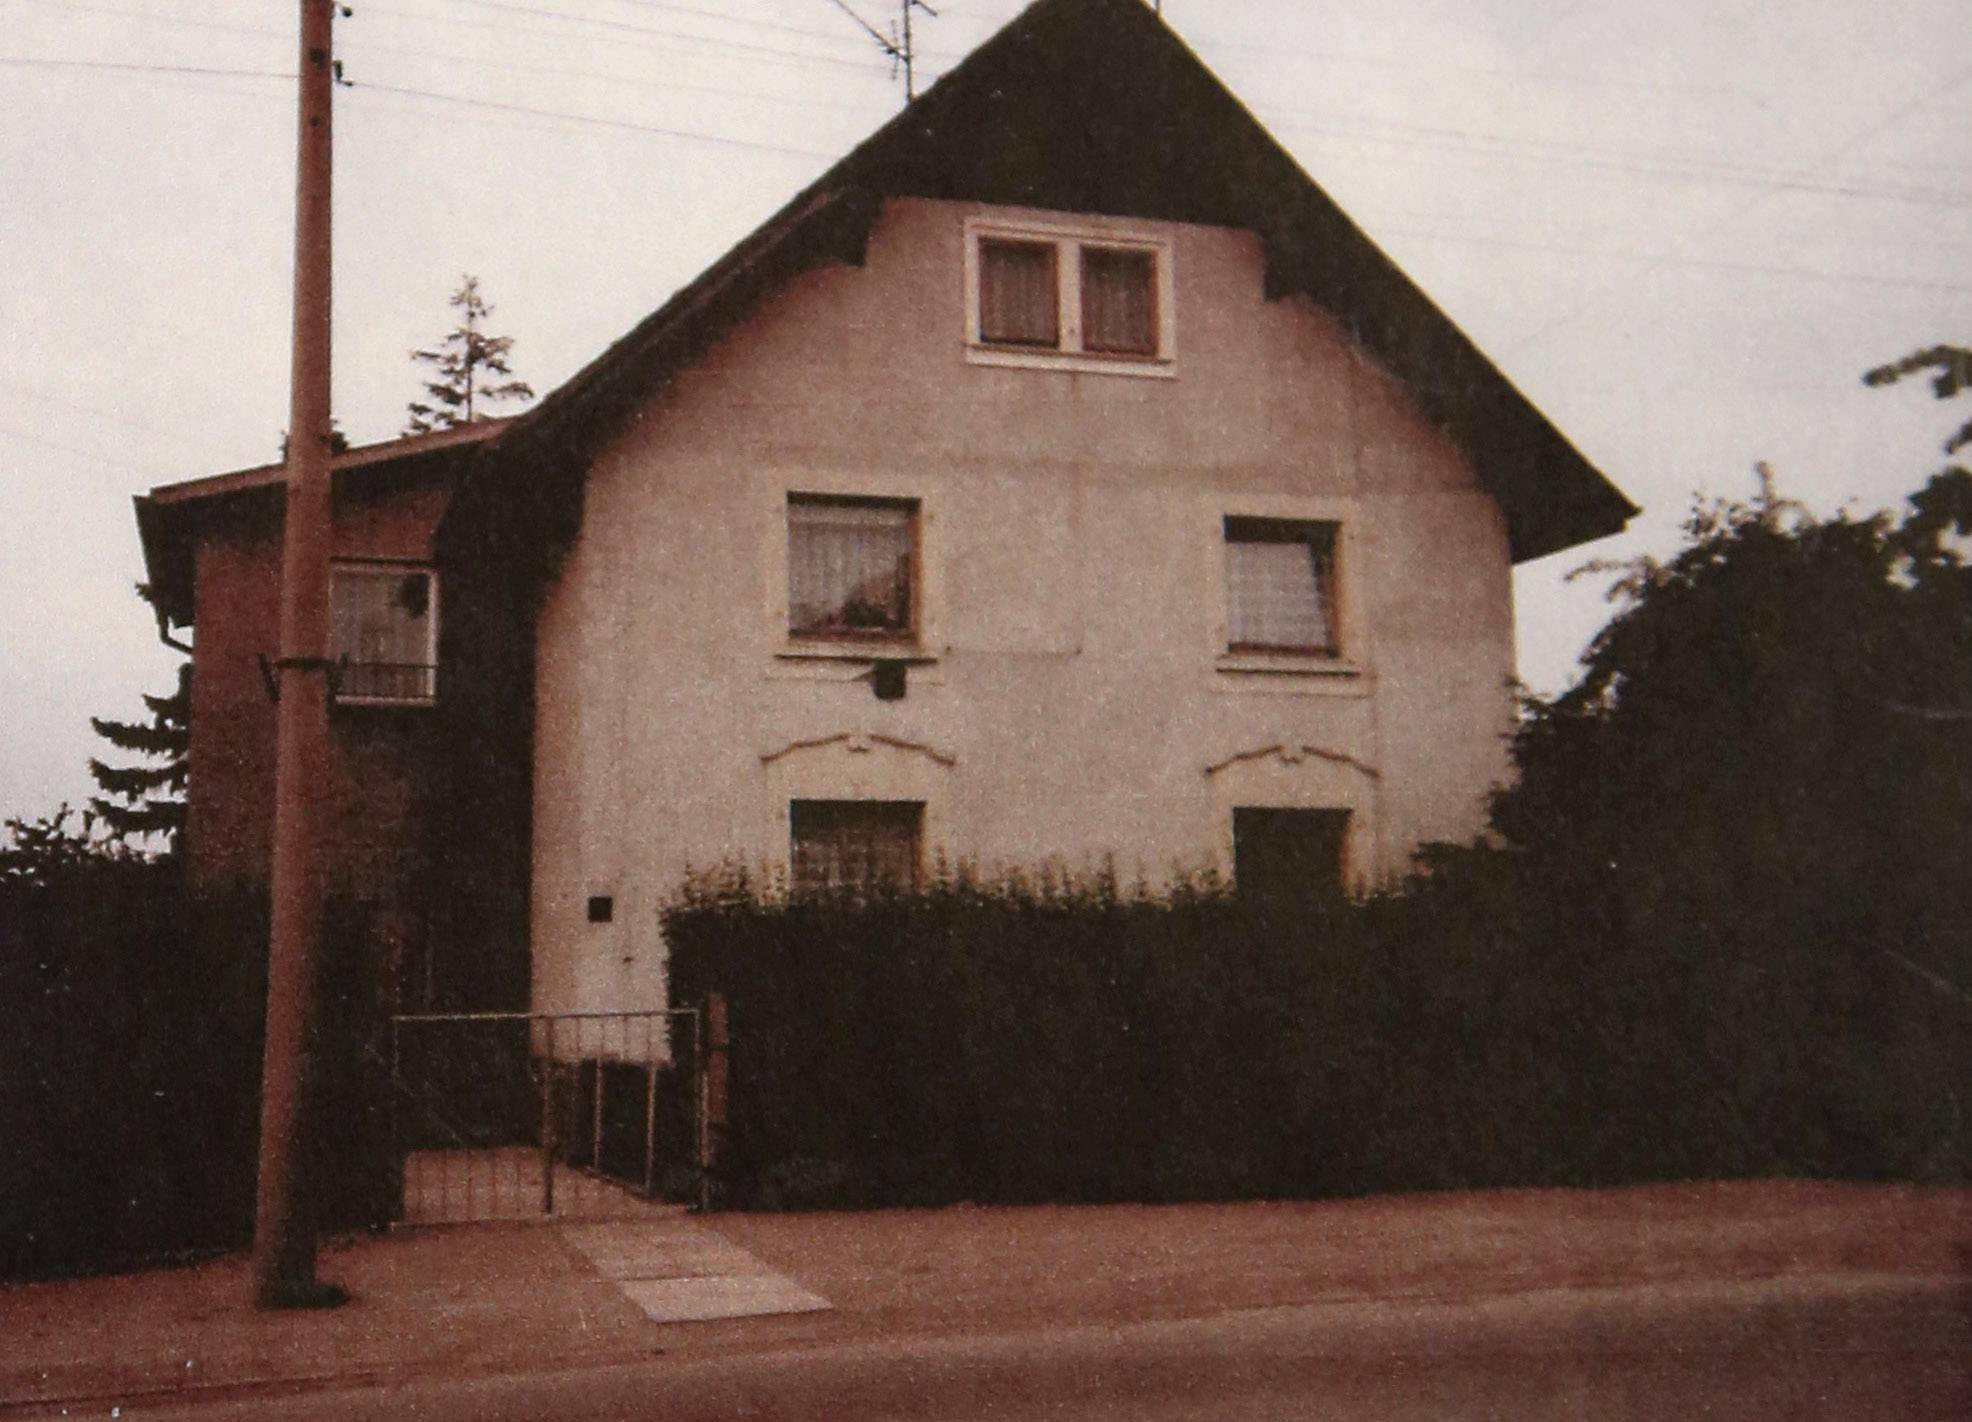 Ralph Rehbock's family lived in this home in Gotha, Germany. The night after the family left, Nazis came looking for them in the violent rampage of Kristallnacht.